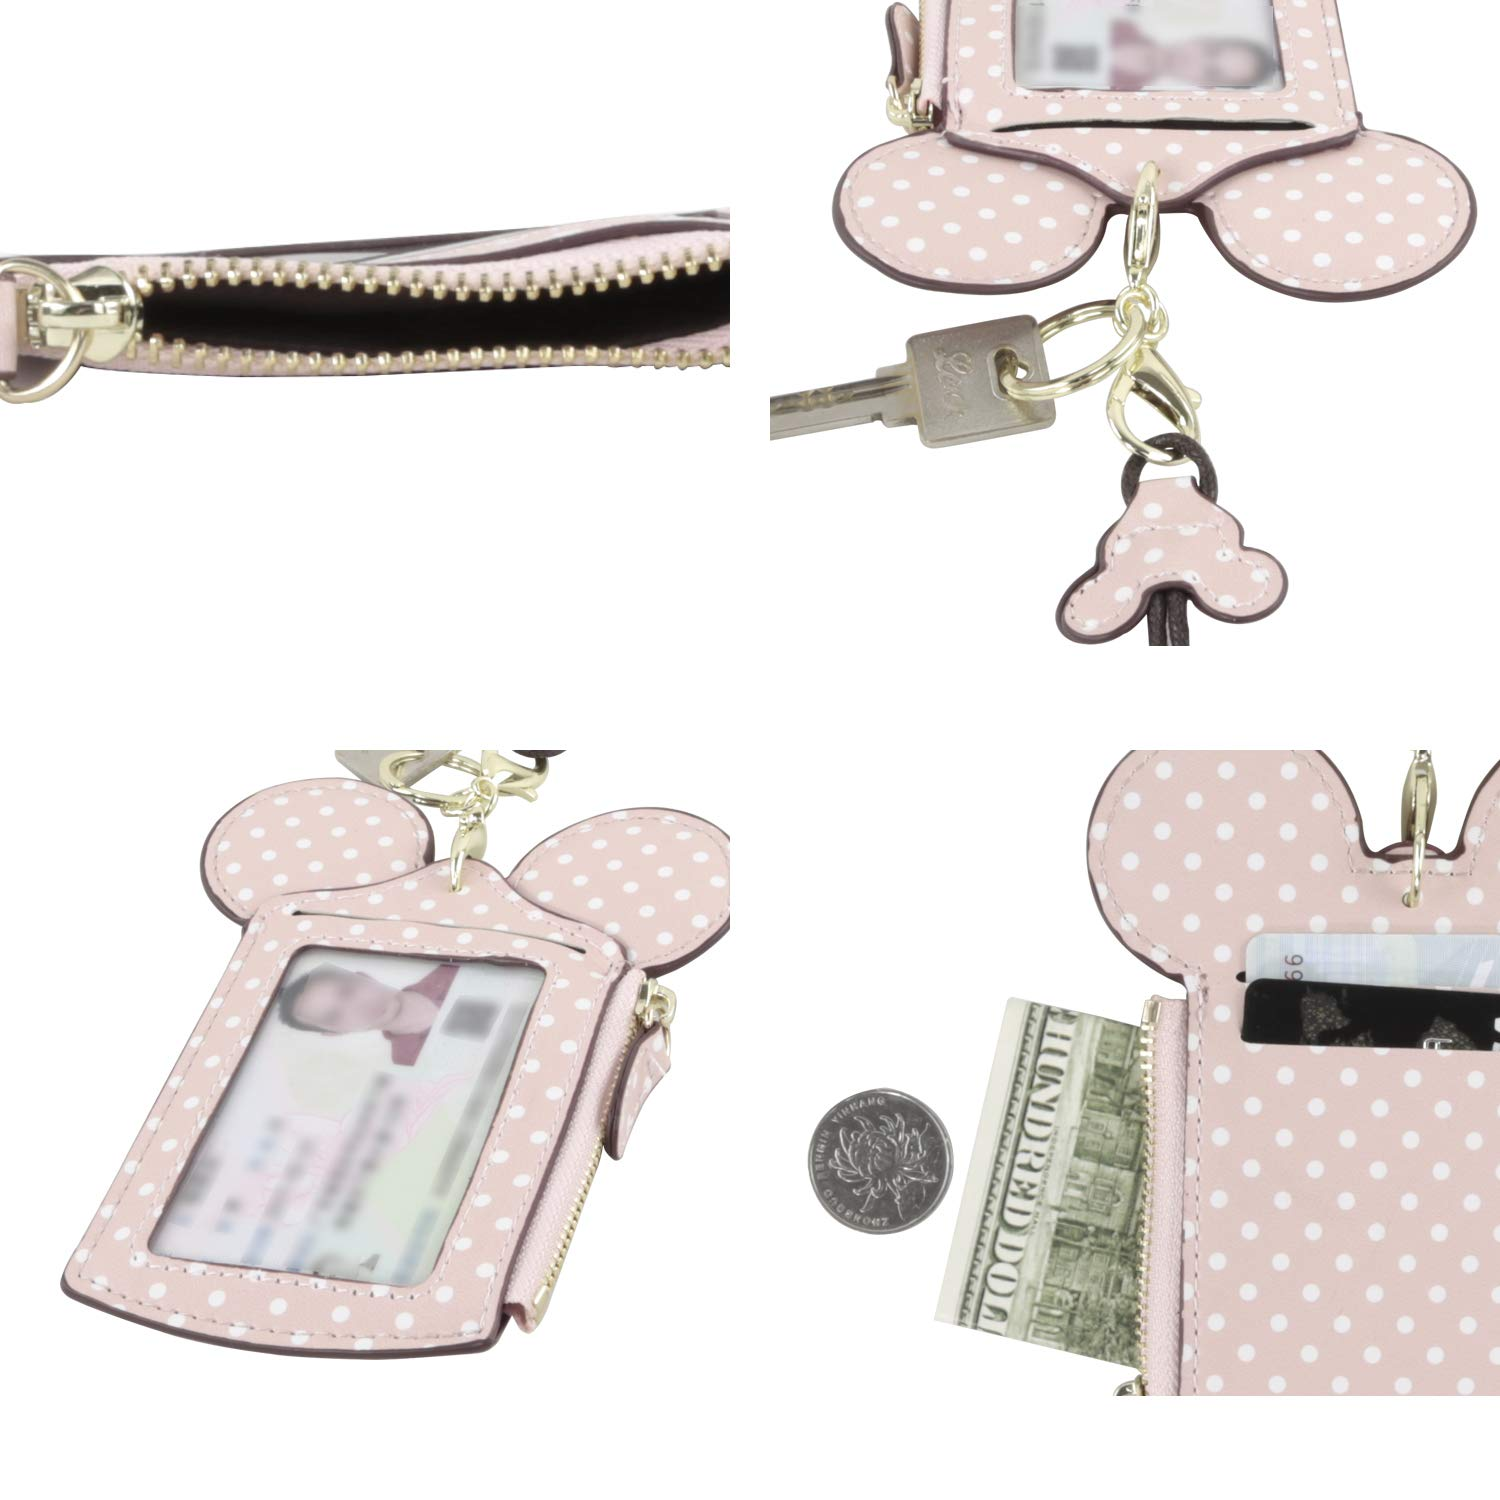 HXQ ID Holder With Lanyard Badge Holder,PU Leather newchic Cute Animal Shape neck wallet for Women